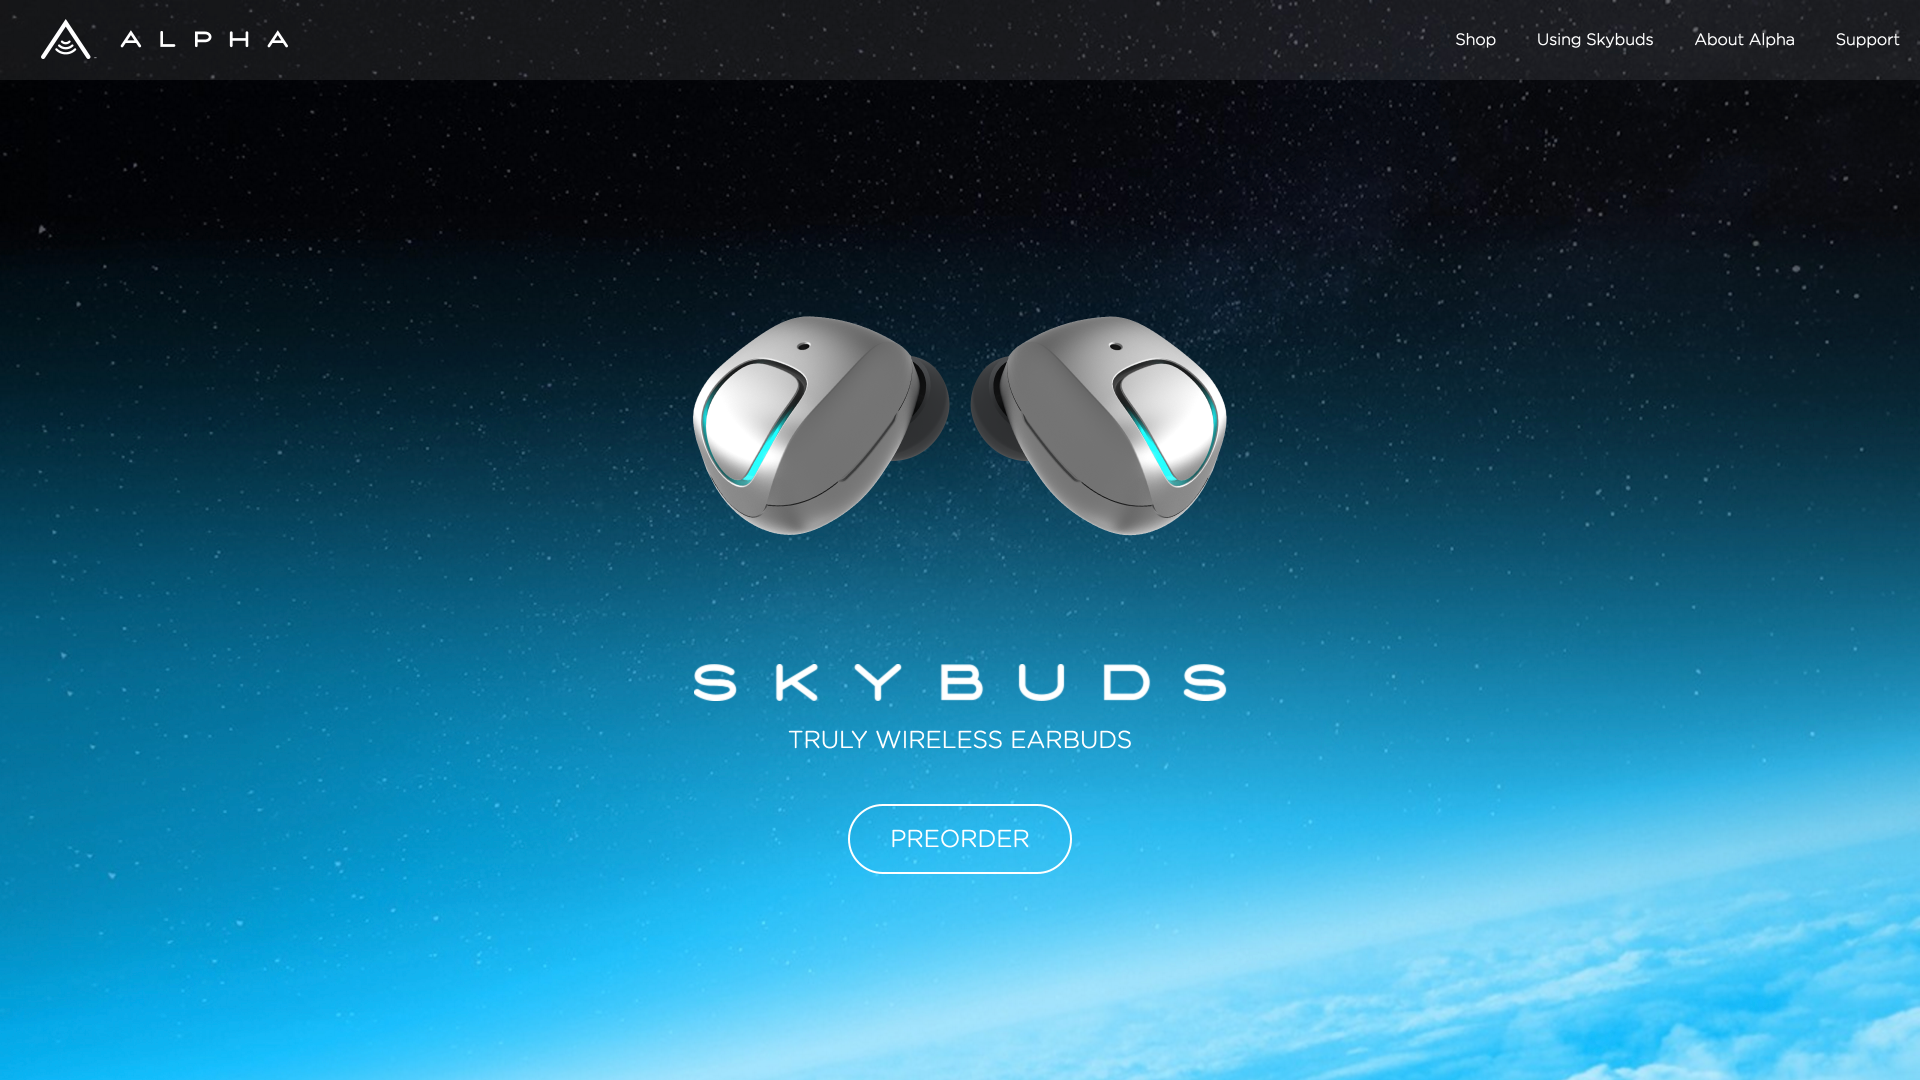 SkyBuds Website Design Preview